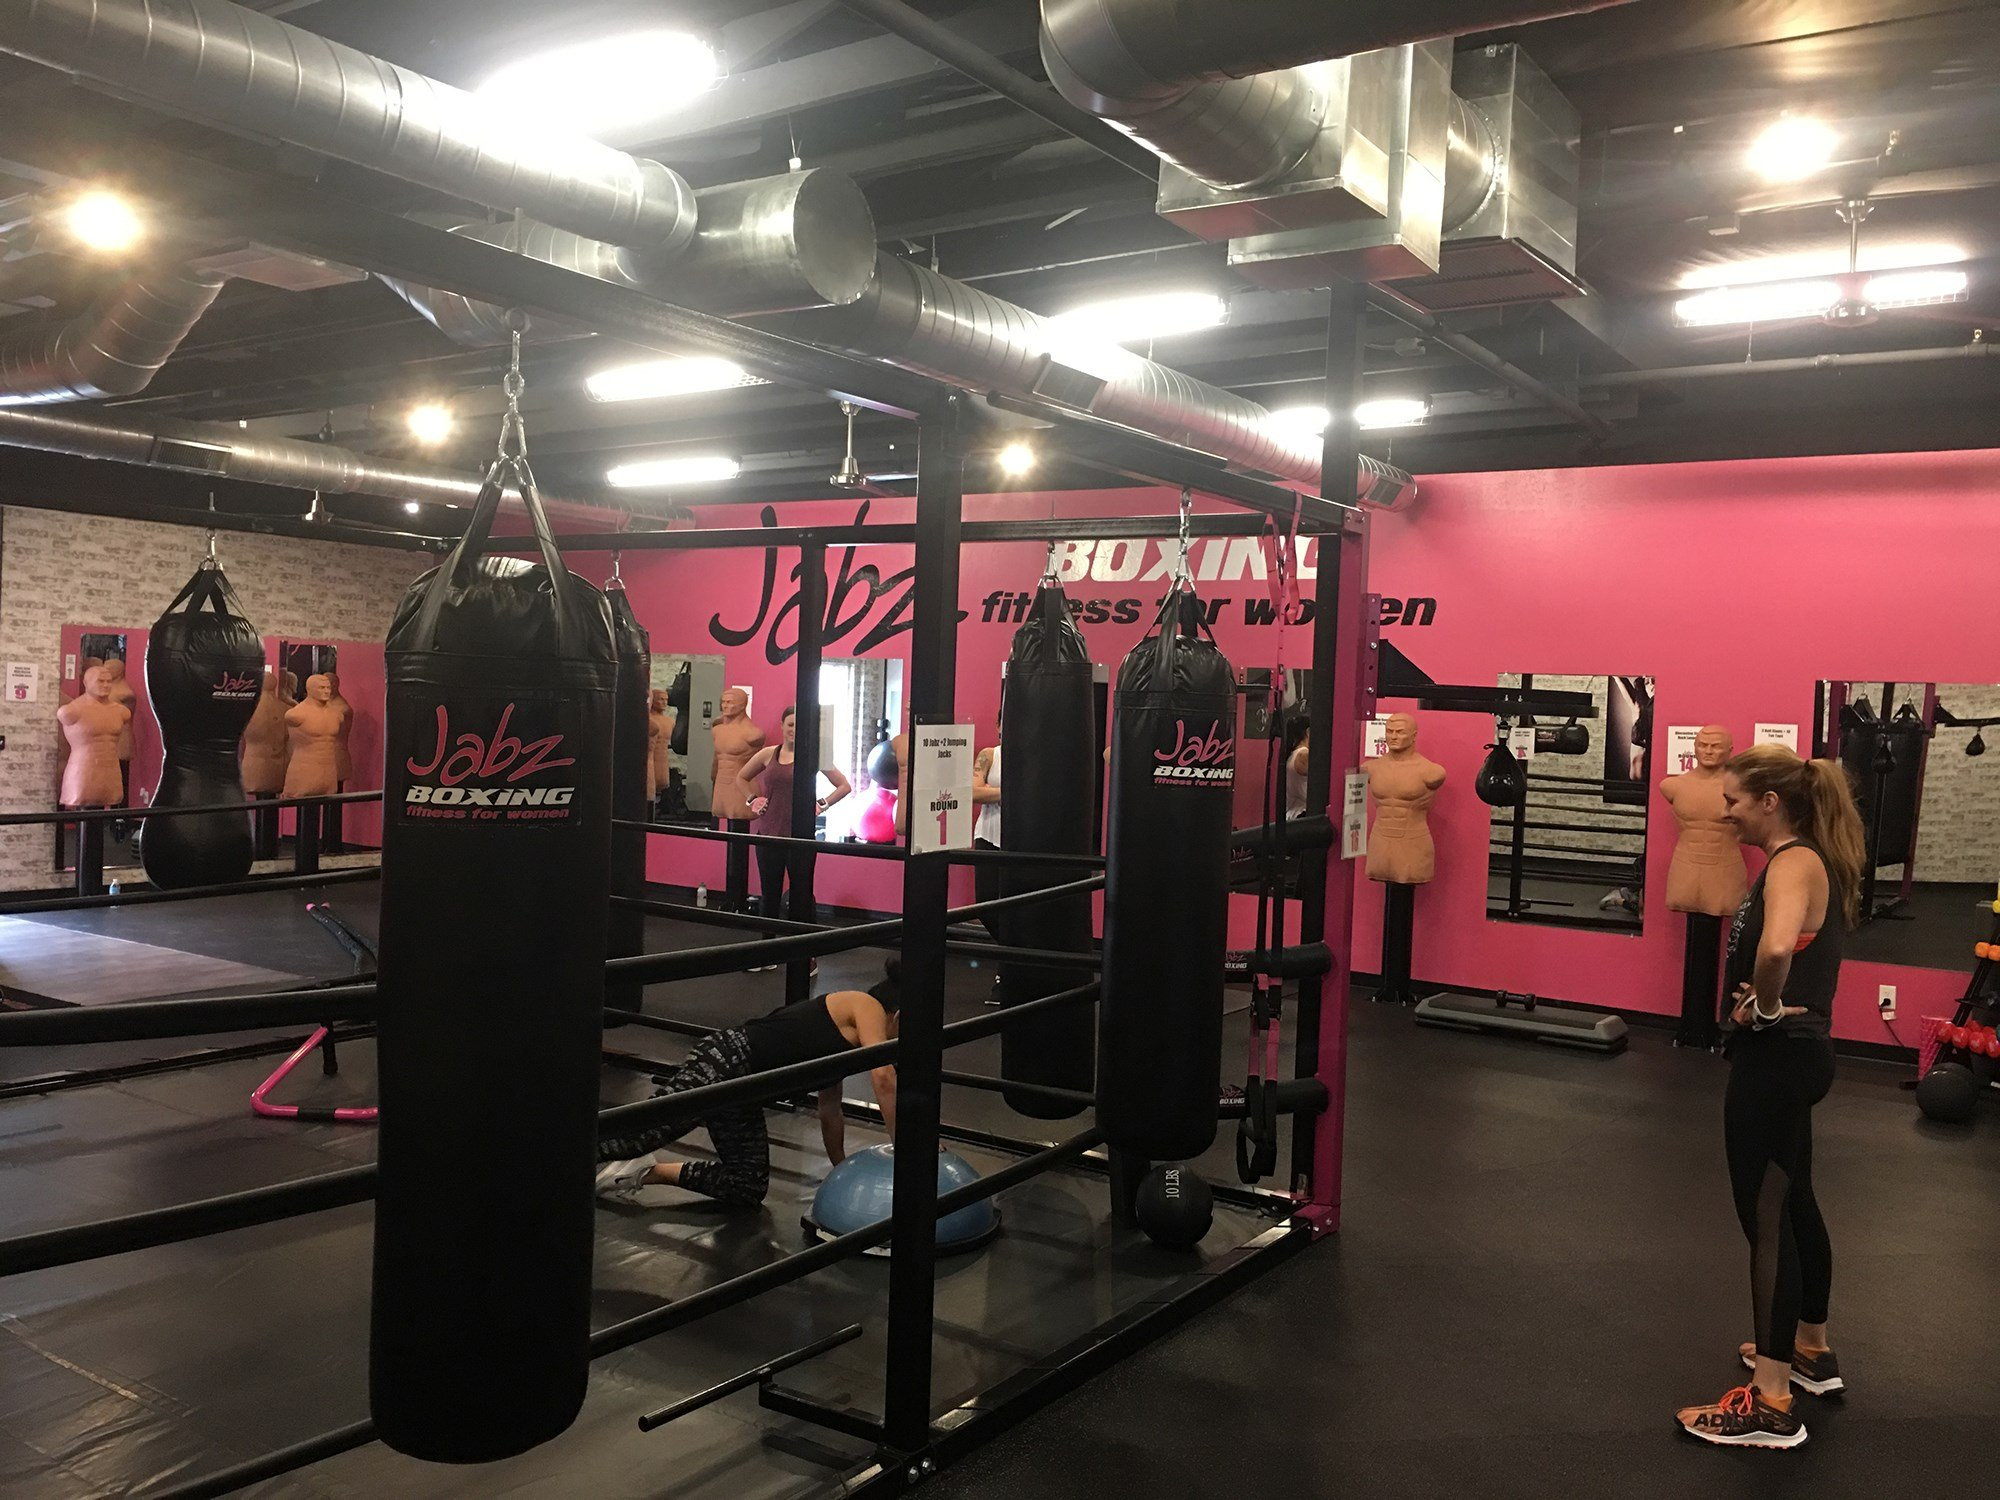 Over the past several years, women-only fitness facilities have exploded in popularity. Jabz Boxing in the Arcardia neighborhood of Phoenix is part of a franchise. (Source: Tim Johns/Cronkite News)